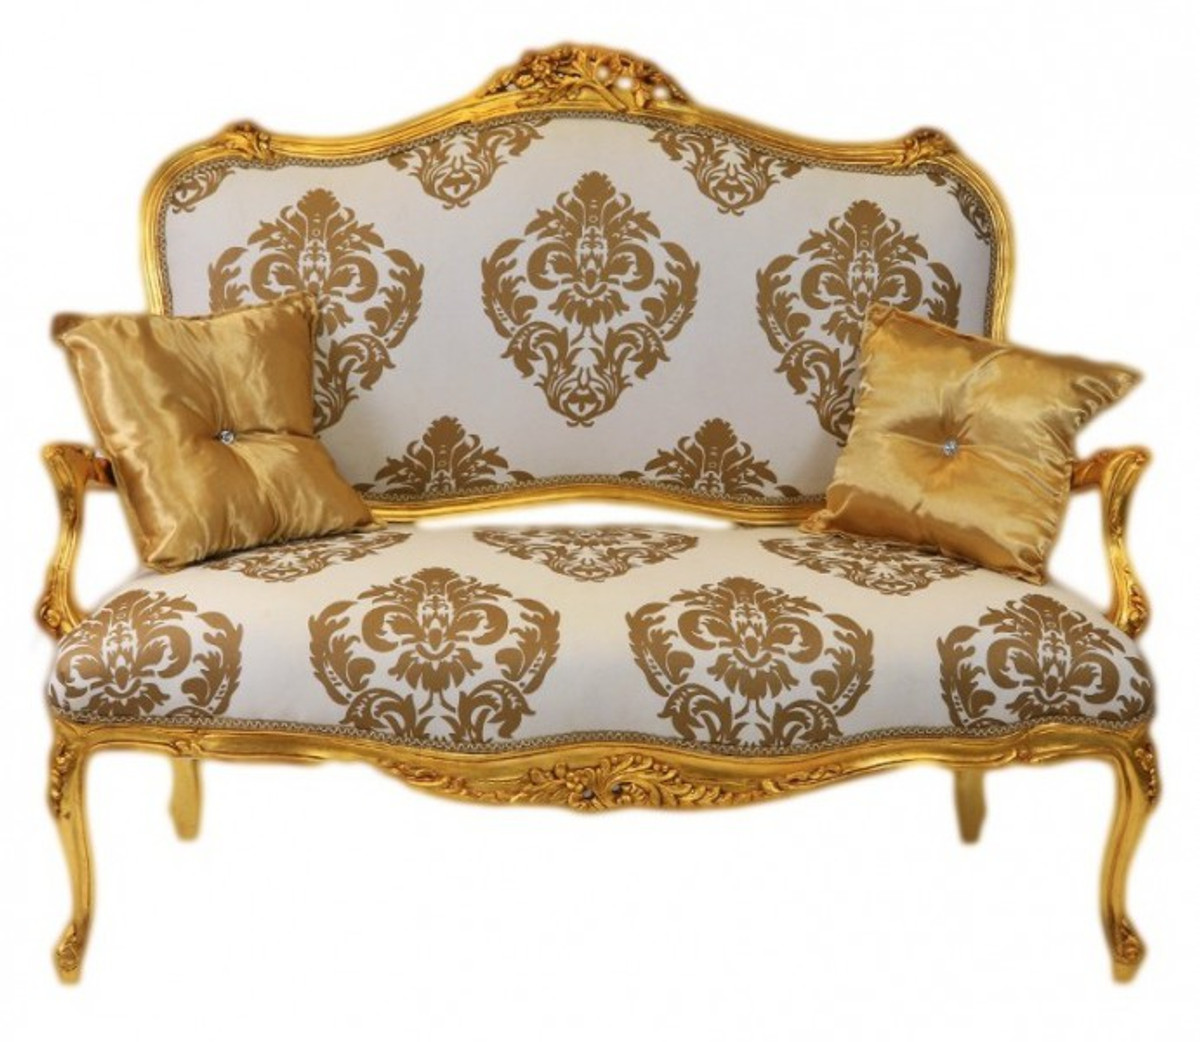 casa padrino barock sofa weiss gold muster gold italienischer stil barock m bel sofas. Black Bedroom Furniture Sets. Home Design Ideas